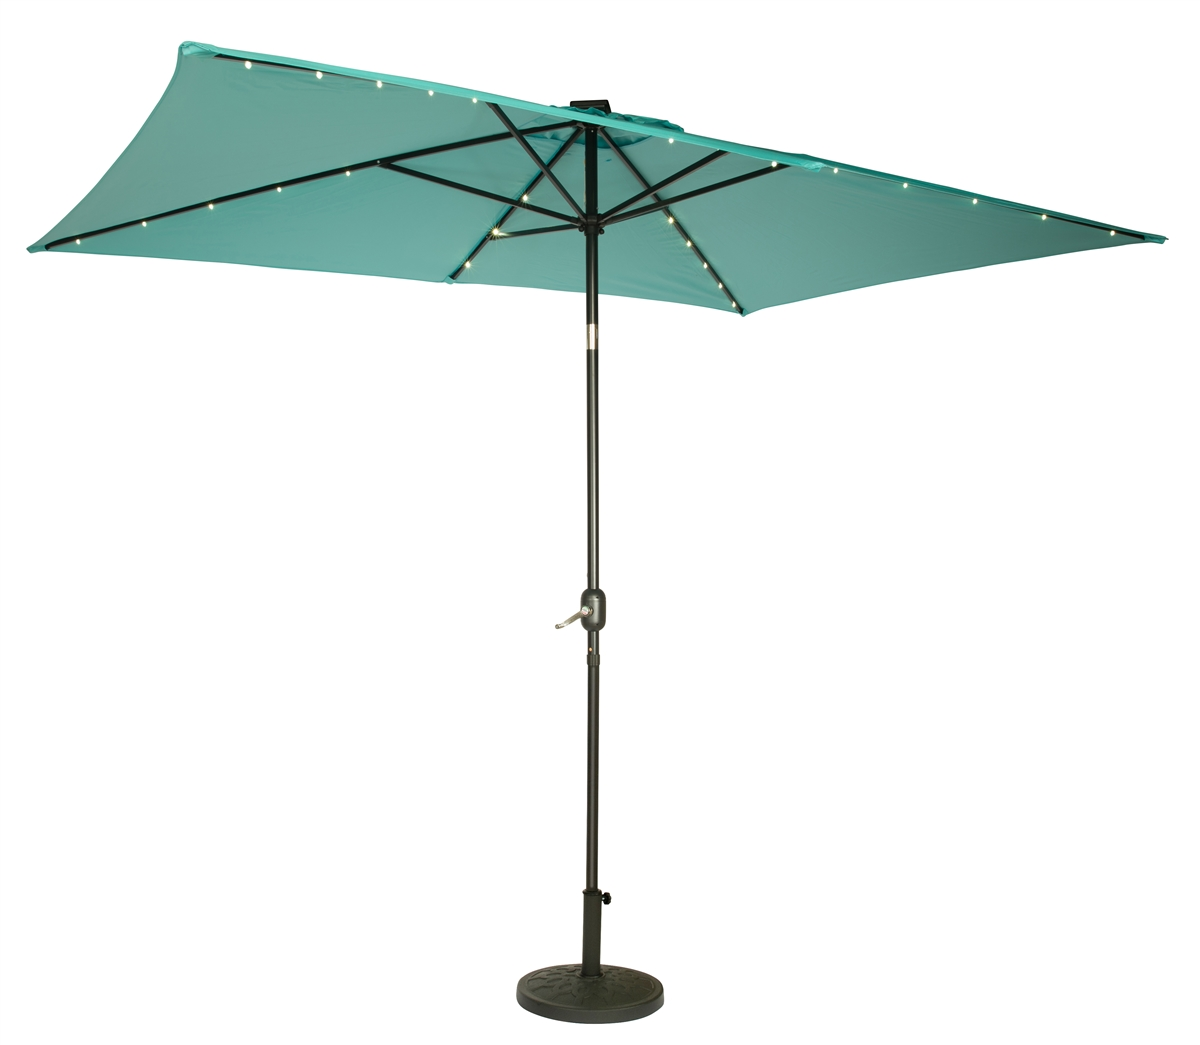 10 x 6 5 rectangular solar powered led lighted patio umbrella by trademark innovations teal